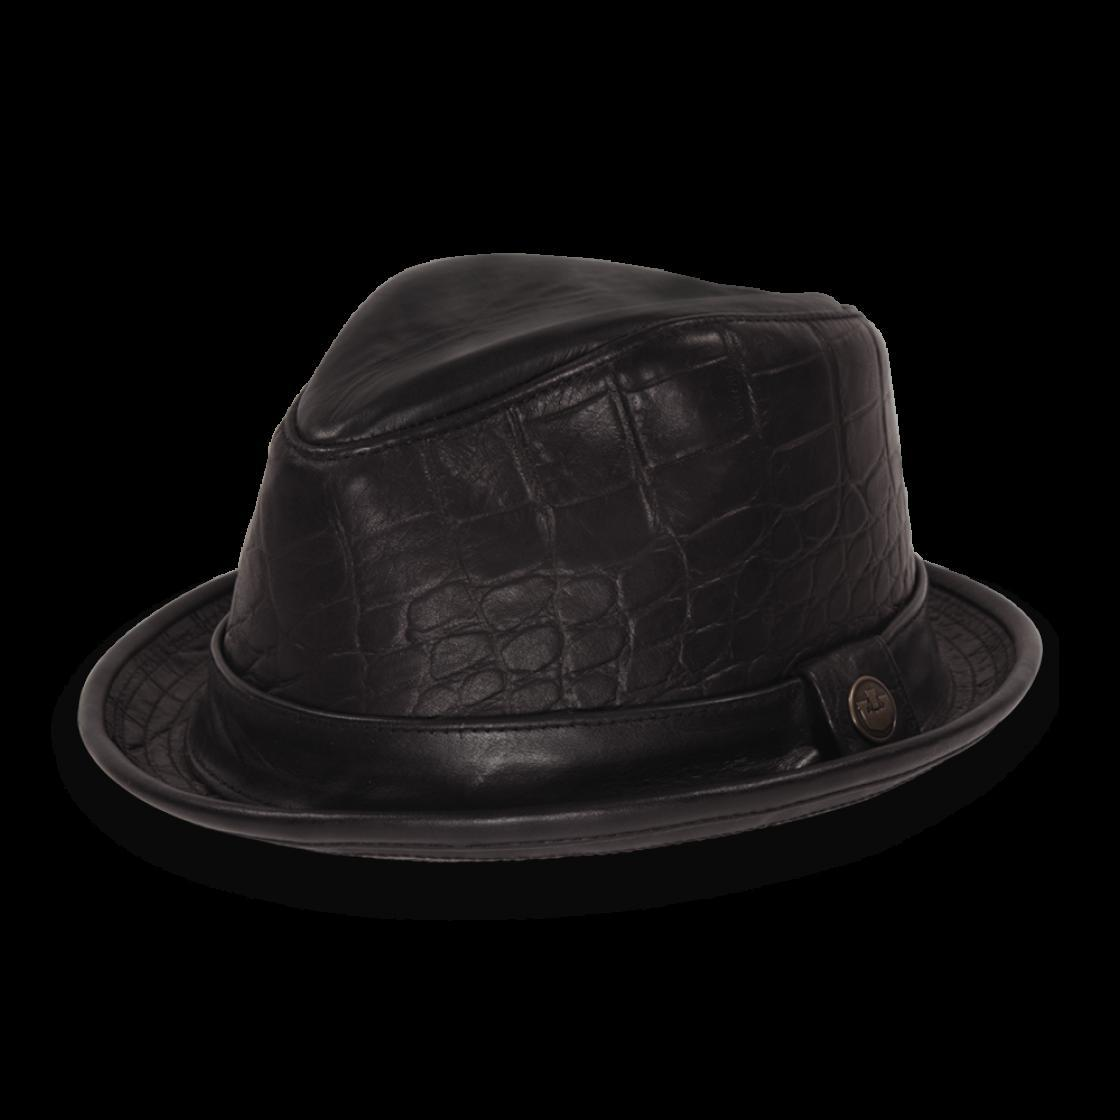 9e347333a60 Goorin Bros Belsky Leather Fedora Hat